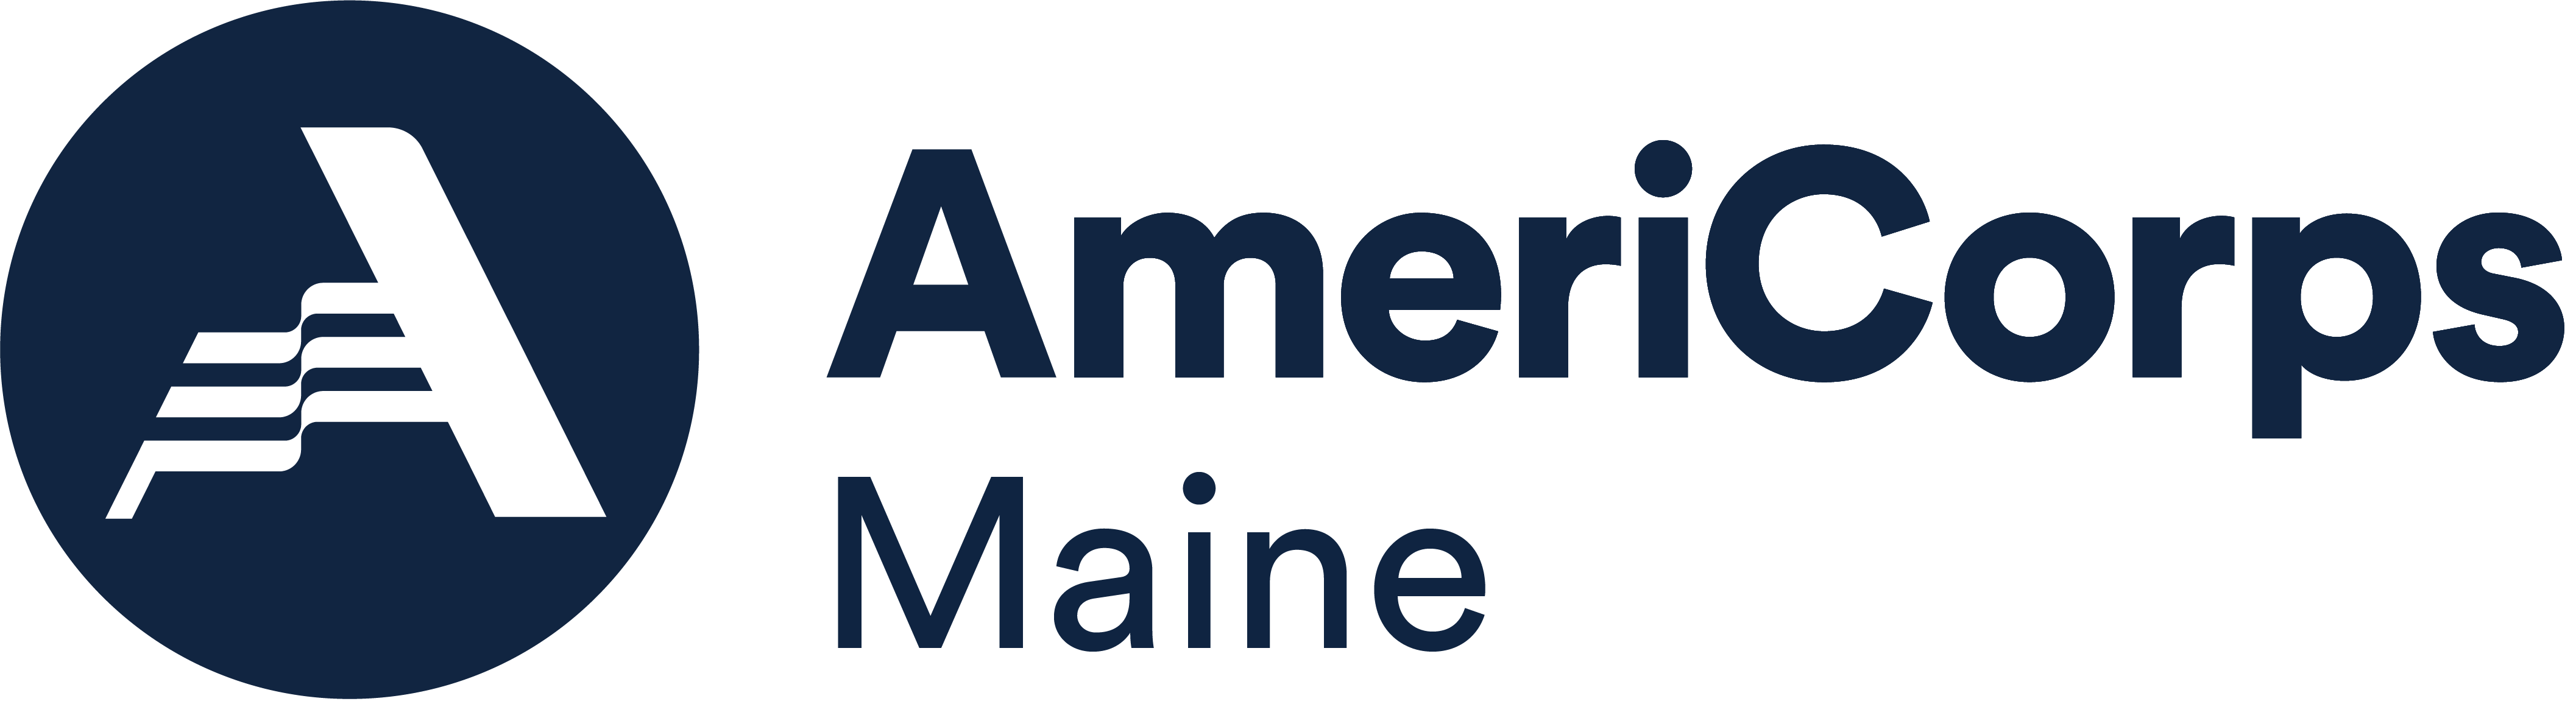 AmeriCorps Maine logo